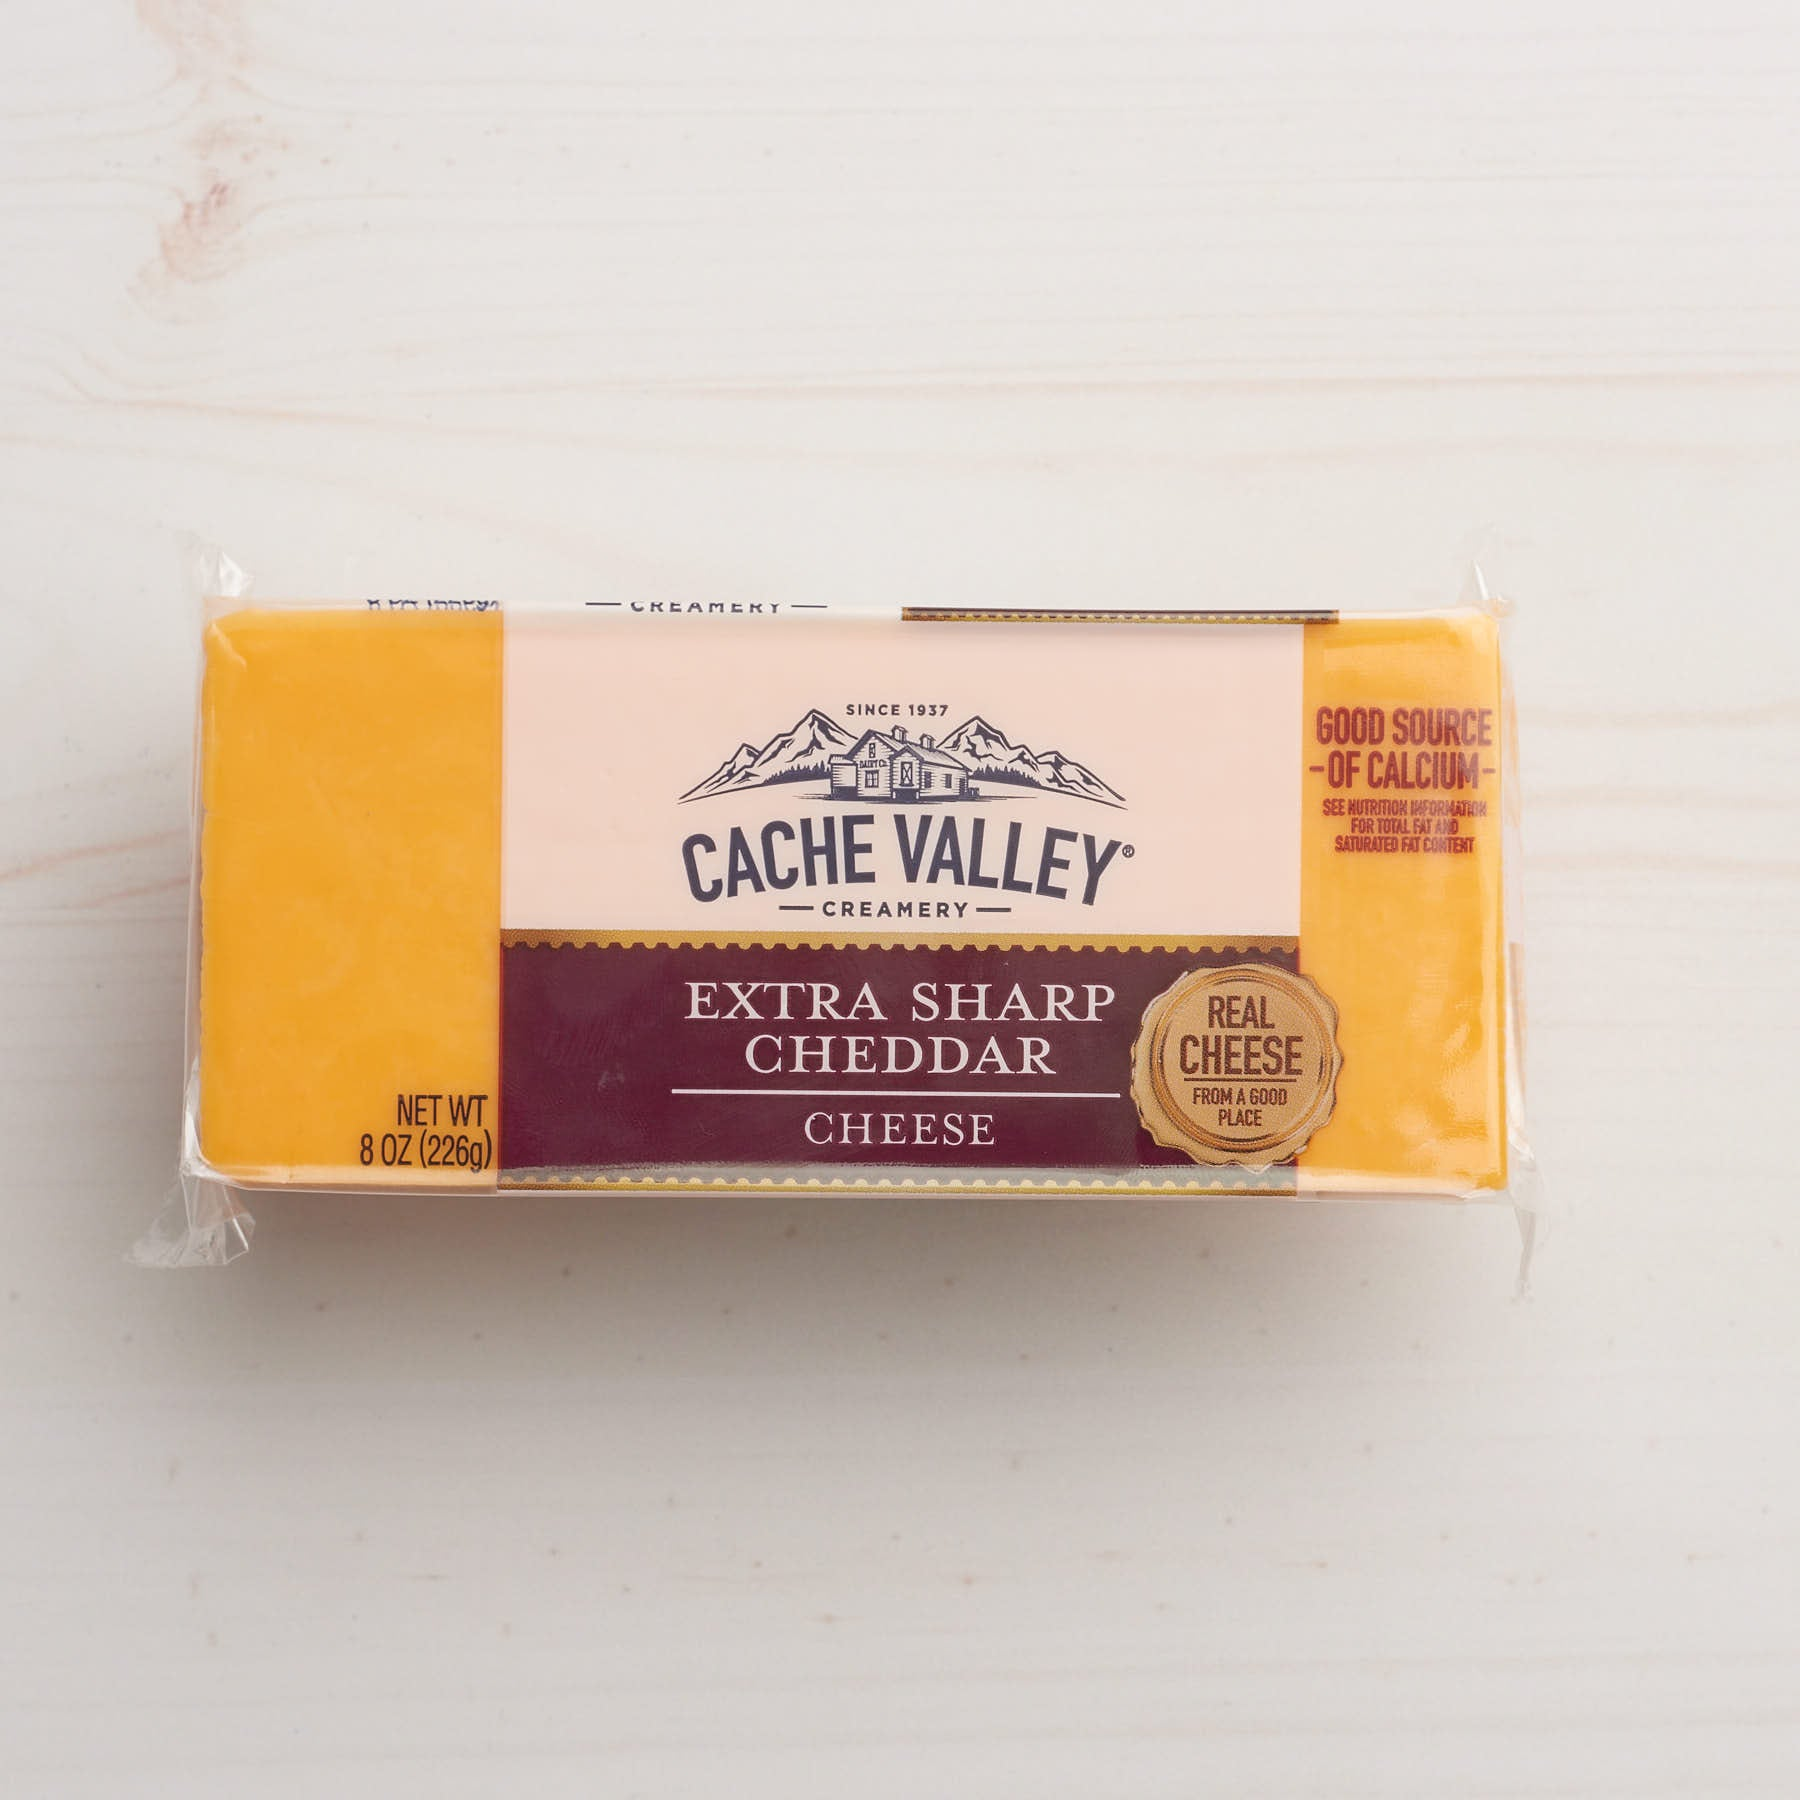 Image of Cache Valley Creamery Extra Sharp Cheddar Cheese